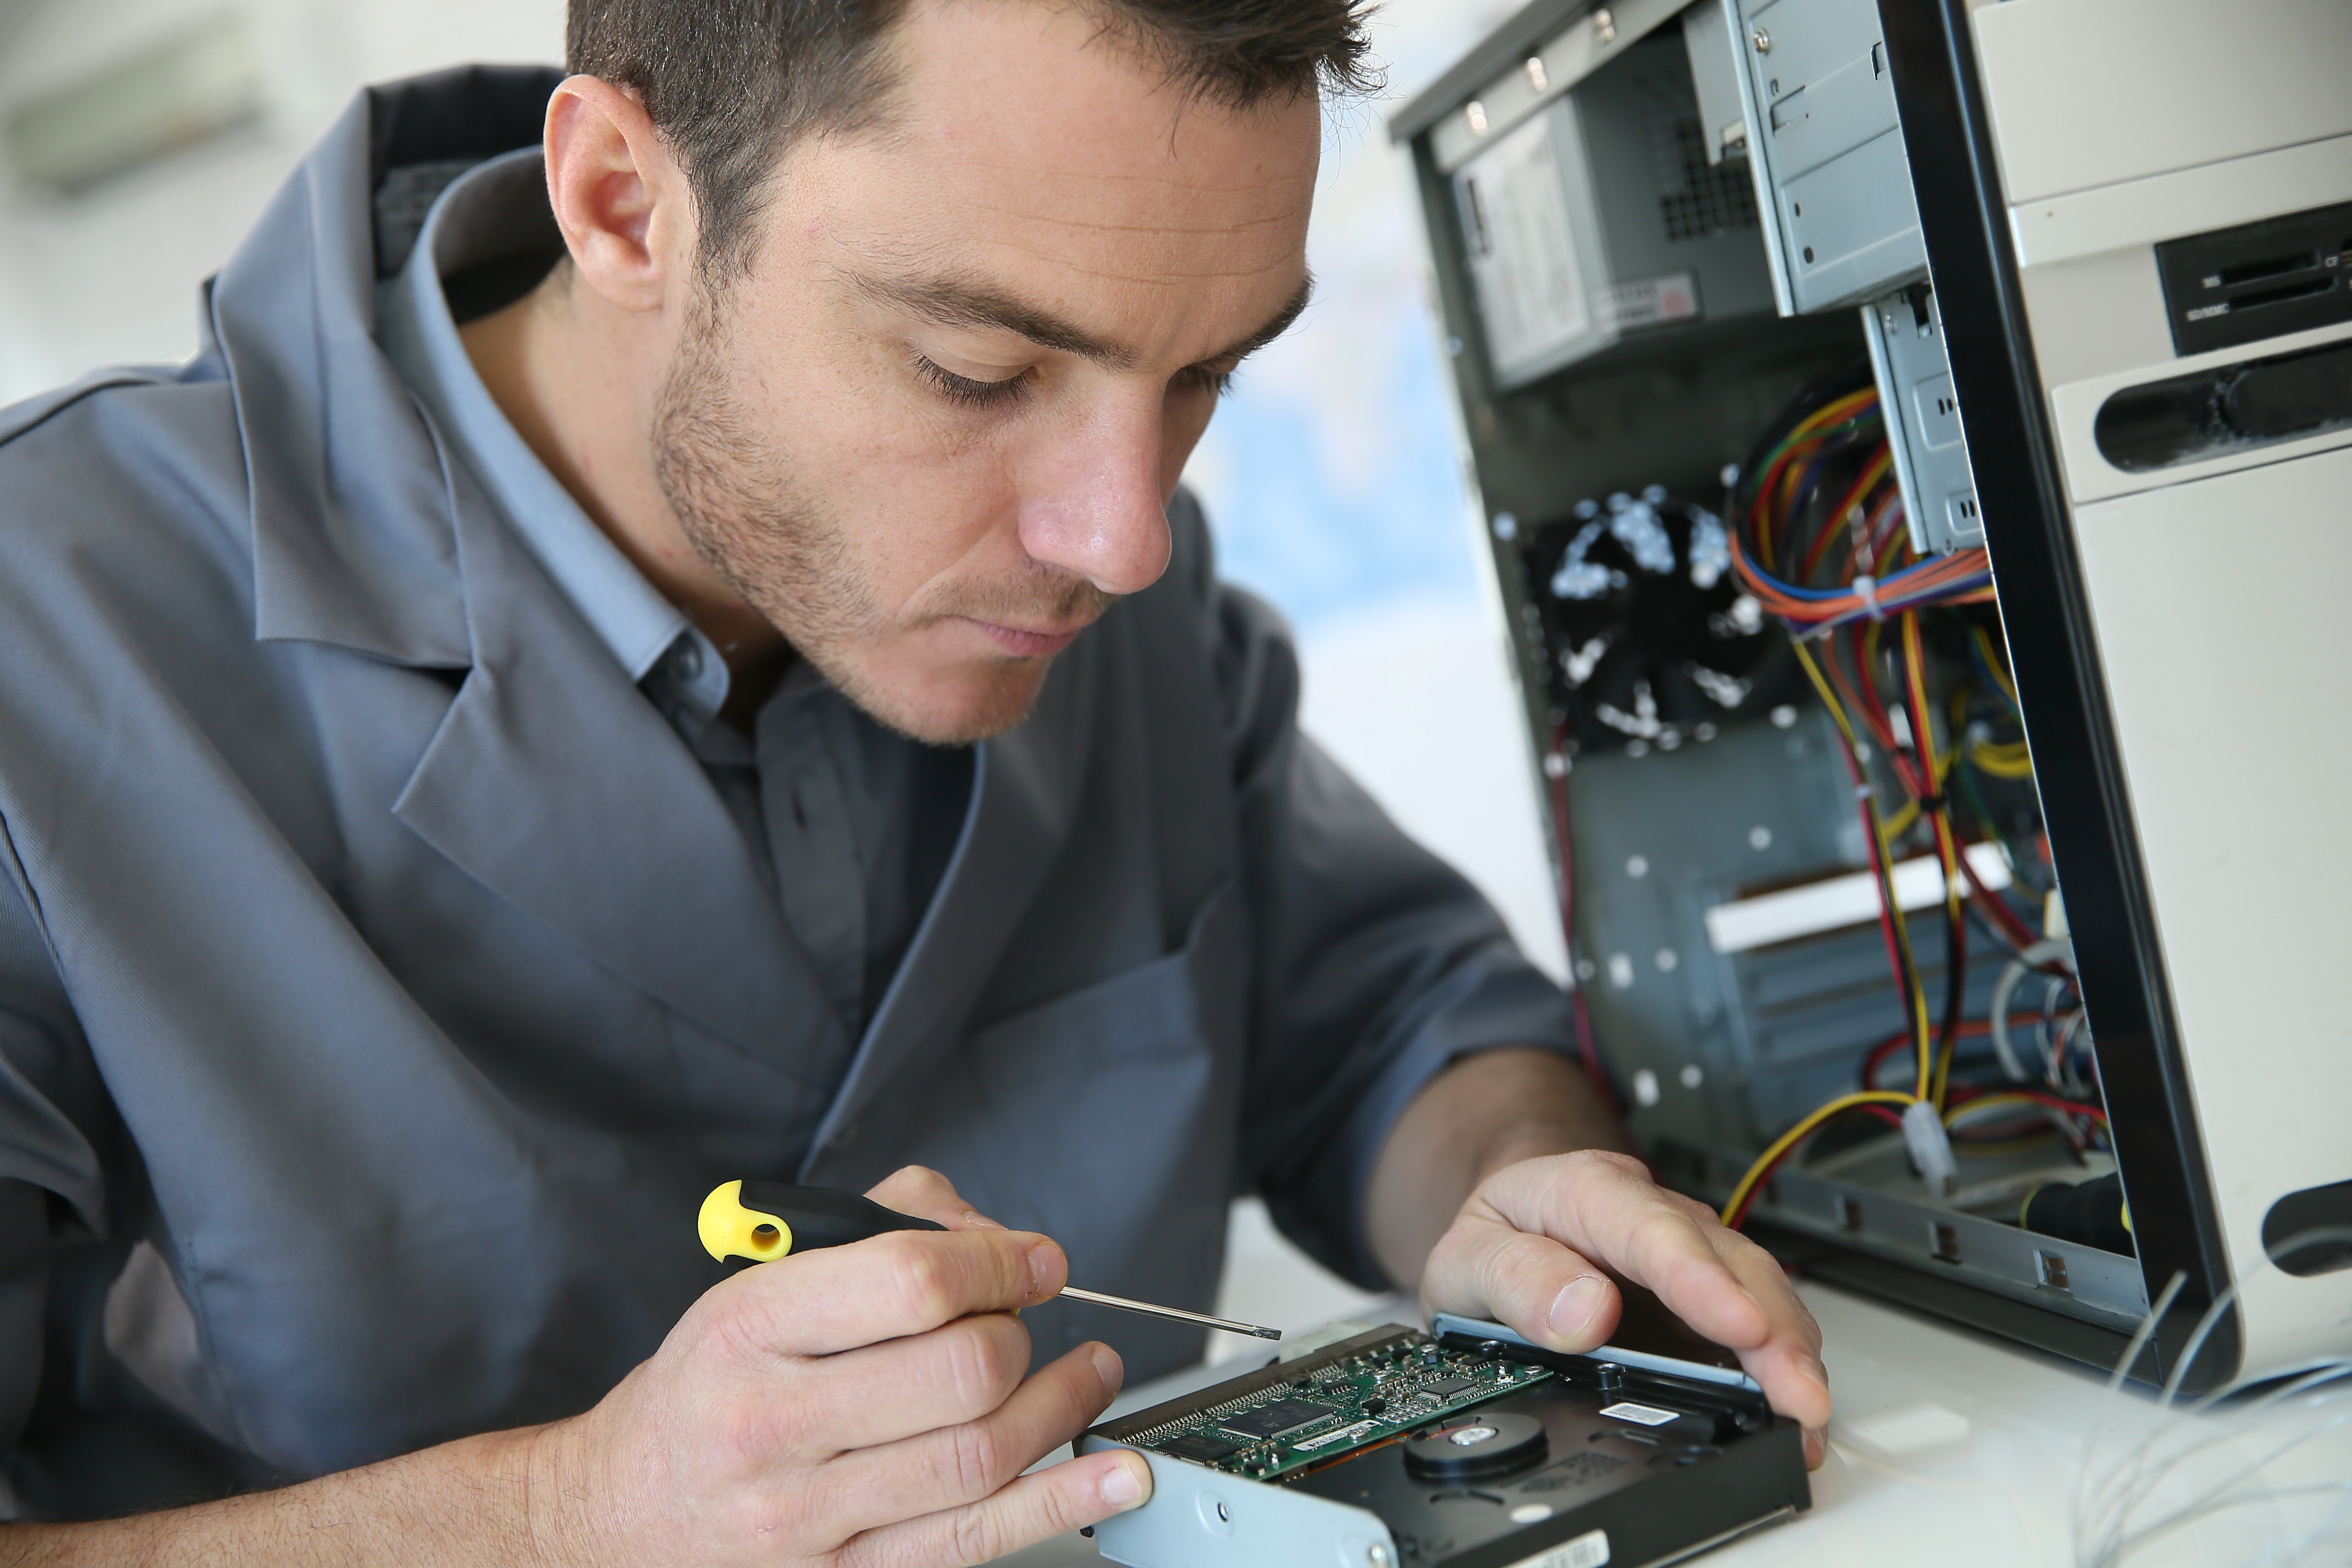 Customizing a hard drive to client's specifications.